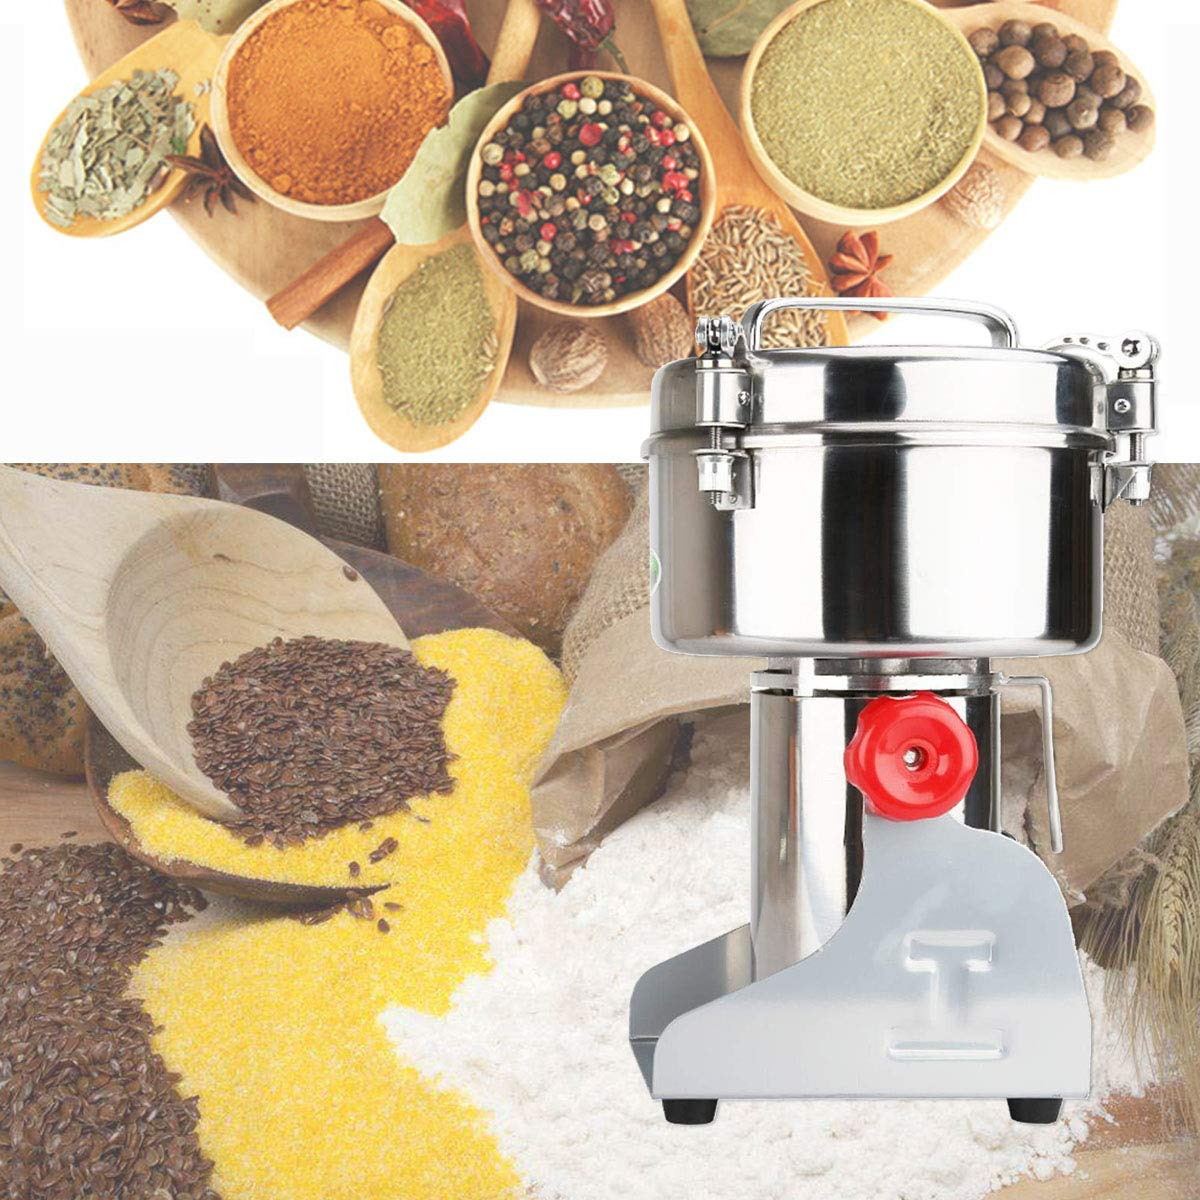 RRH 1000G Swing Type Grain Mill Electric Spice Nut and Coffee Grinder High Speed 25000 RPM Stainless Steel 2800W Powder Machine 50-300 Mesh, for Herbs Corn Sesame Soybean Pepper Bait Feed by RRH (Image #3)